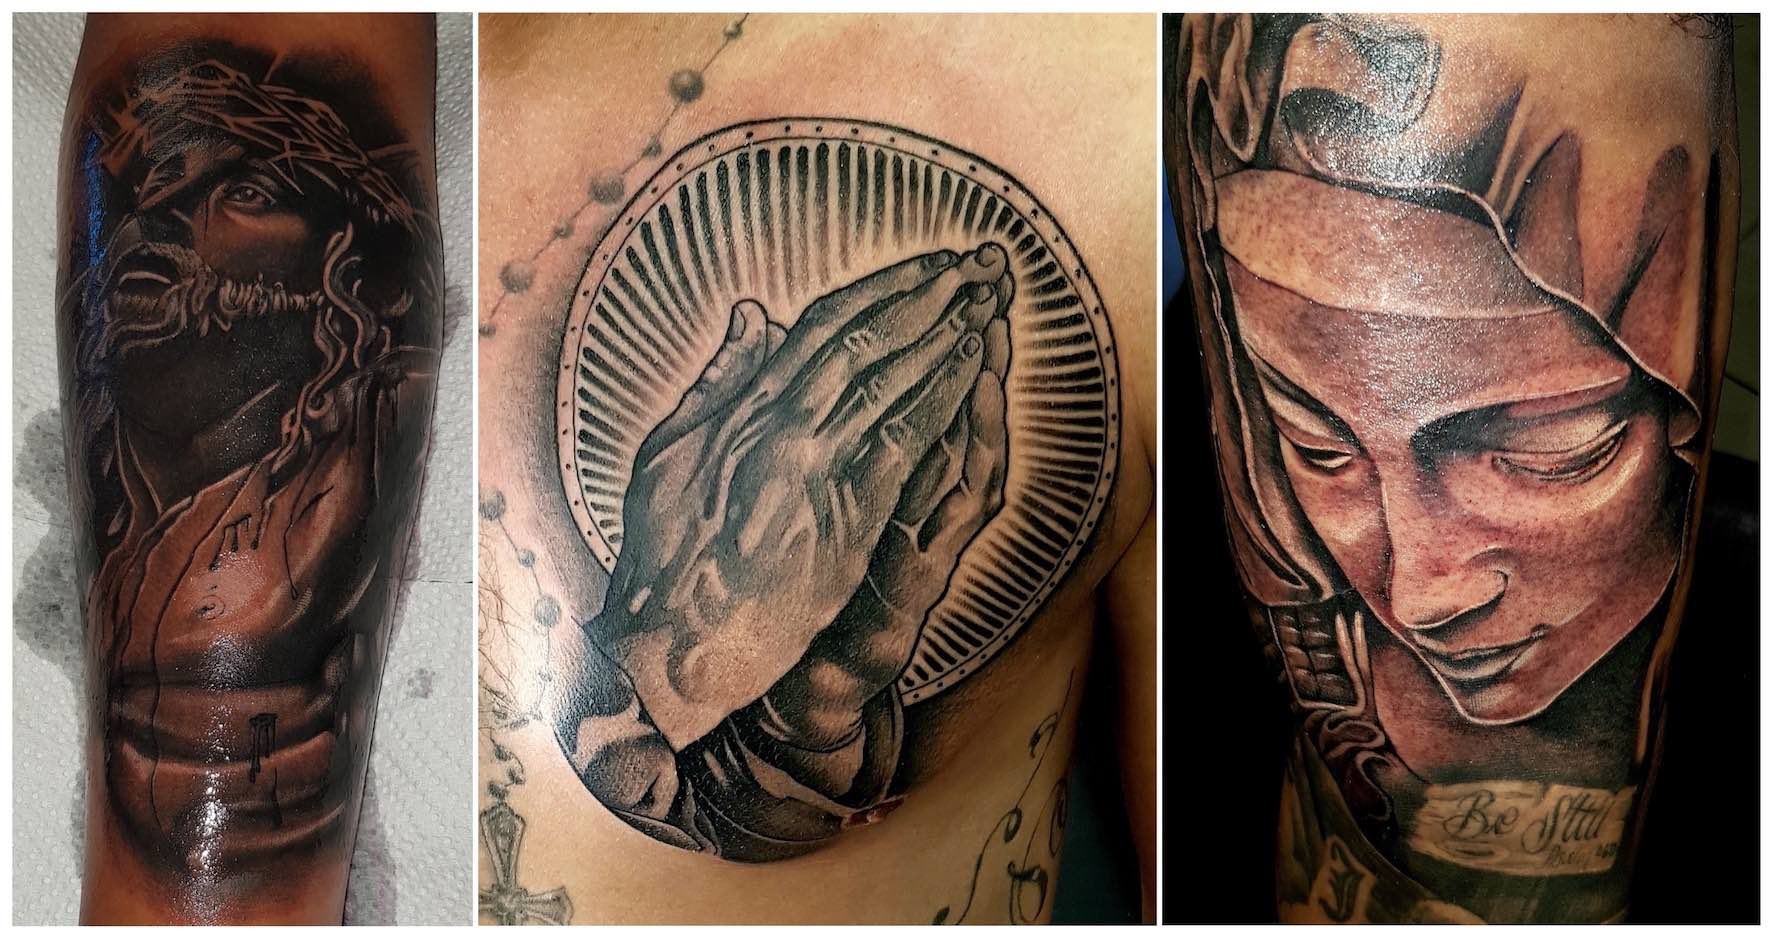 A selection of tattoos by Michael Palmer